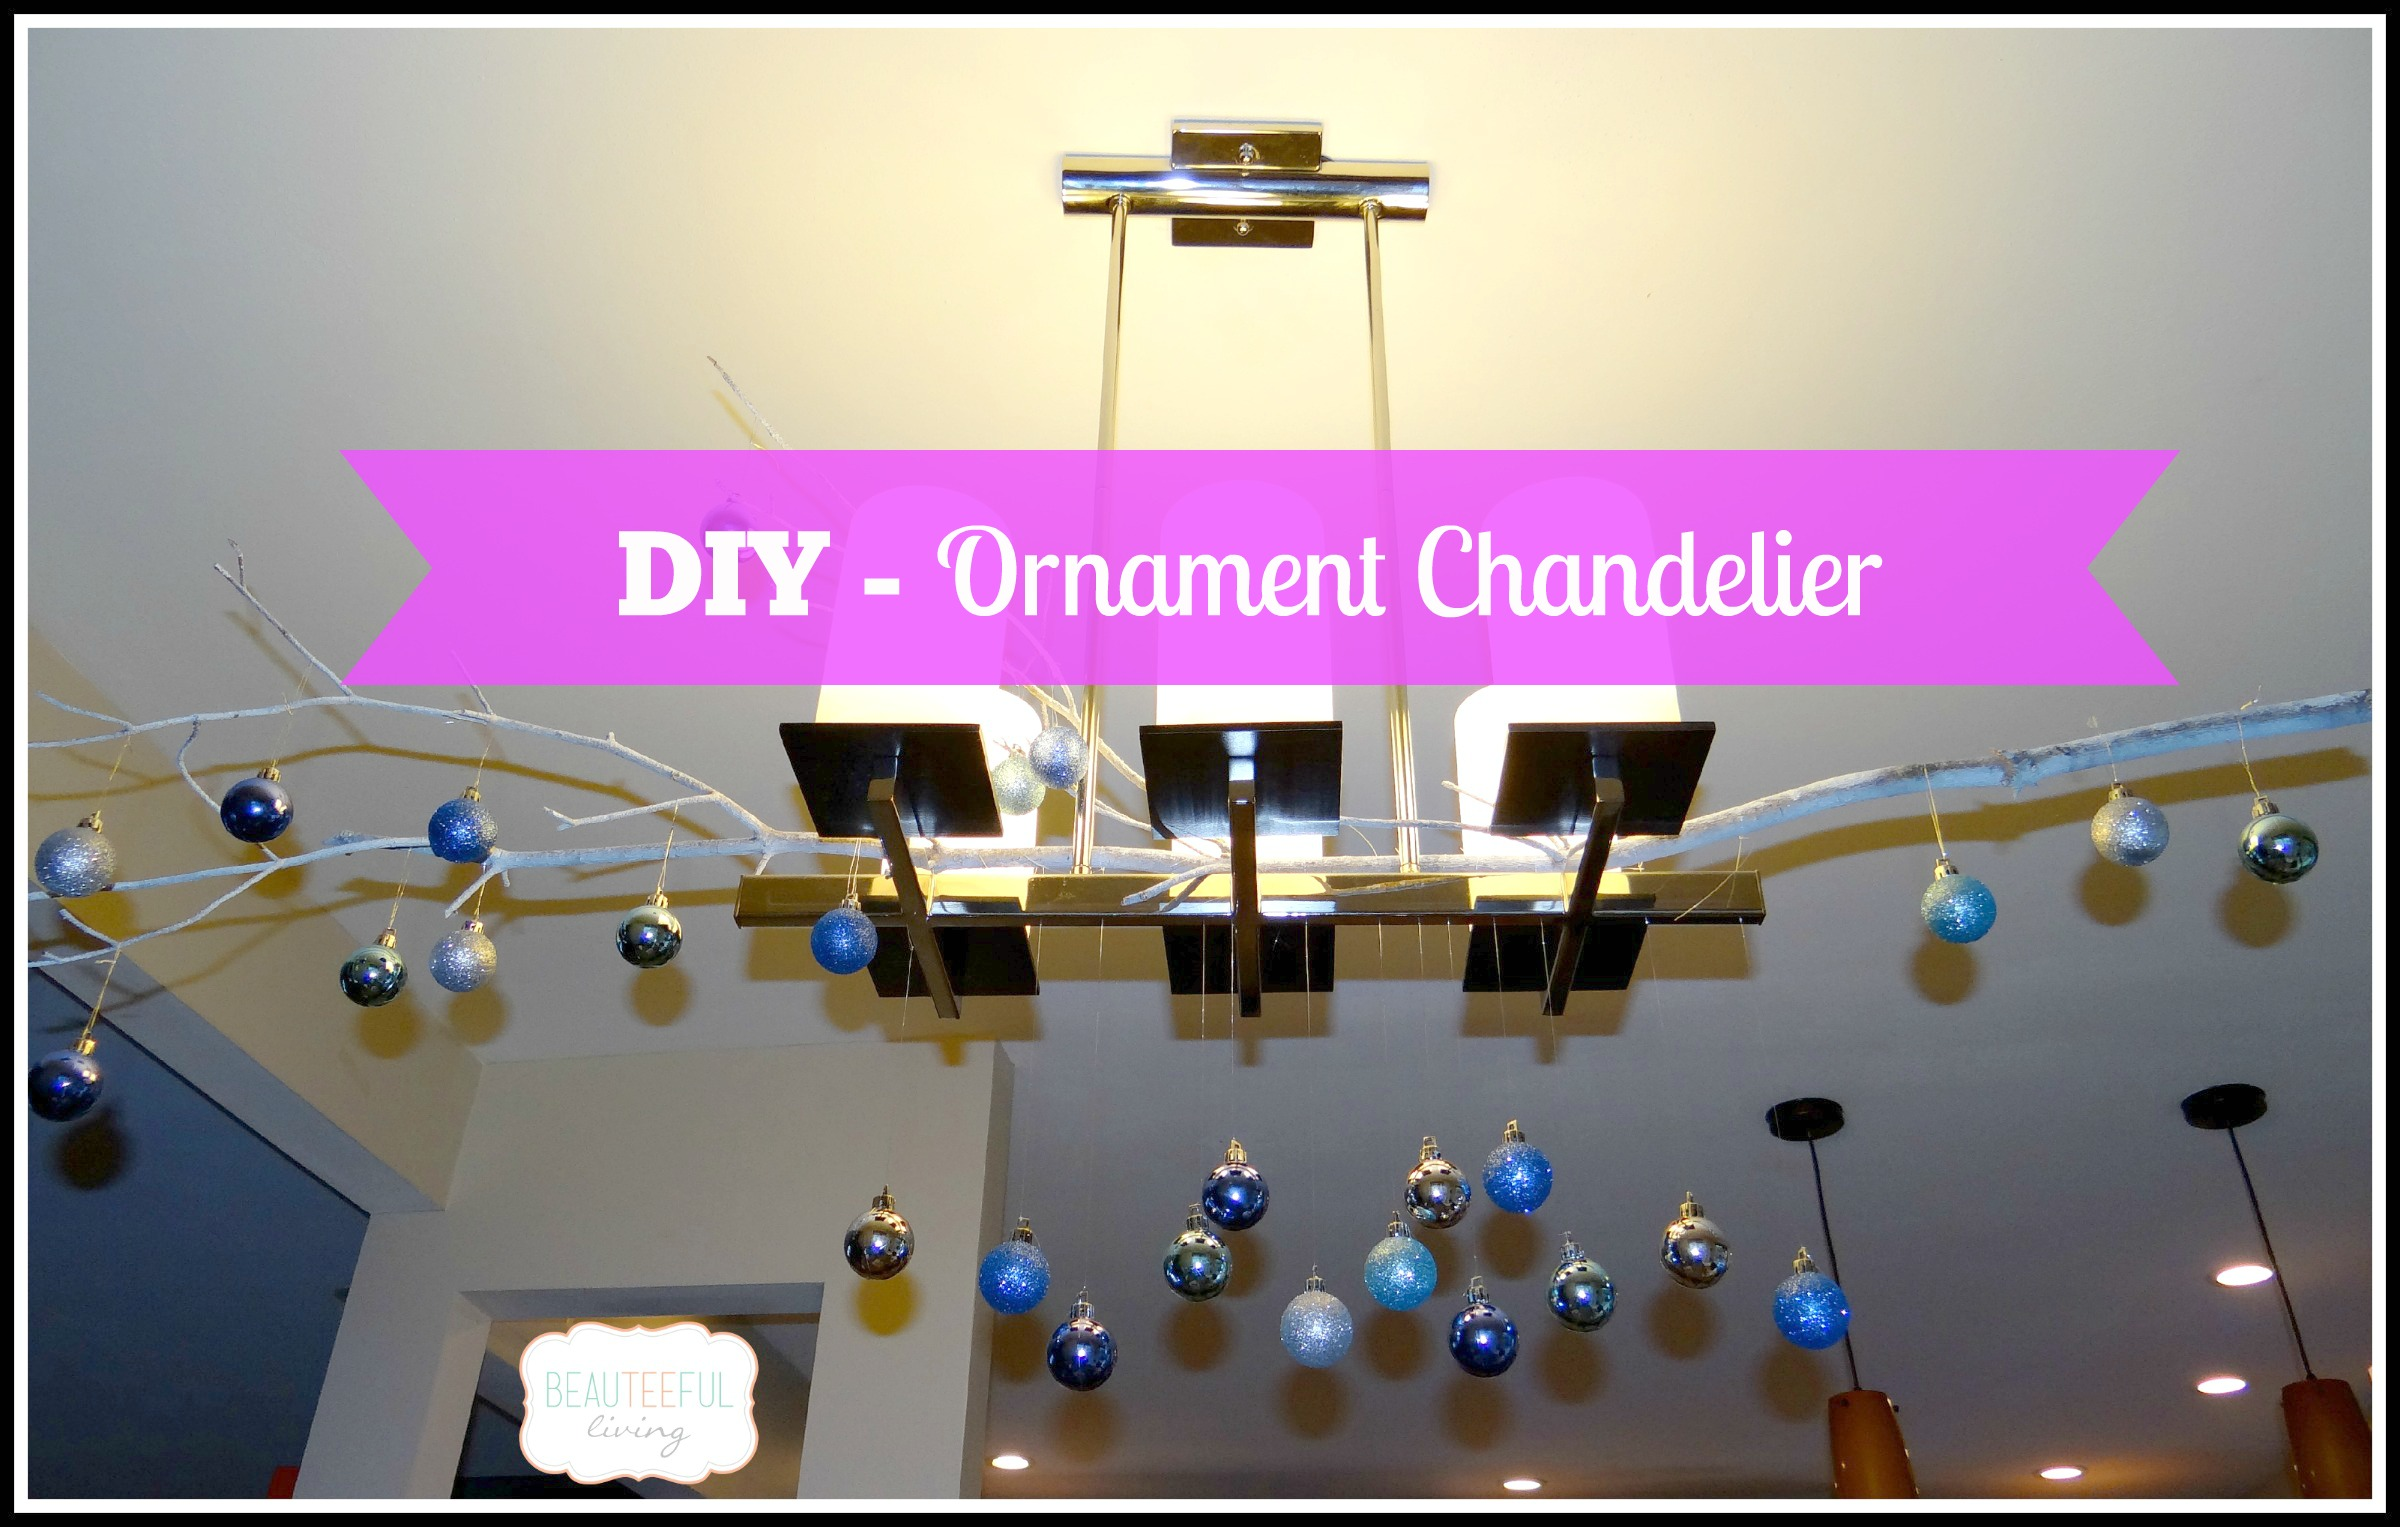 Diy ornament chandelier beauteeful living ornament chandelier diy mozeypictures Image collections